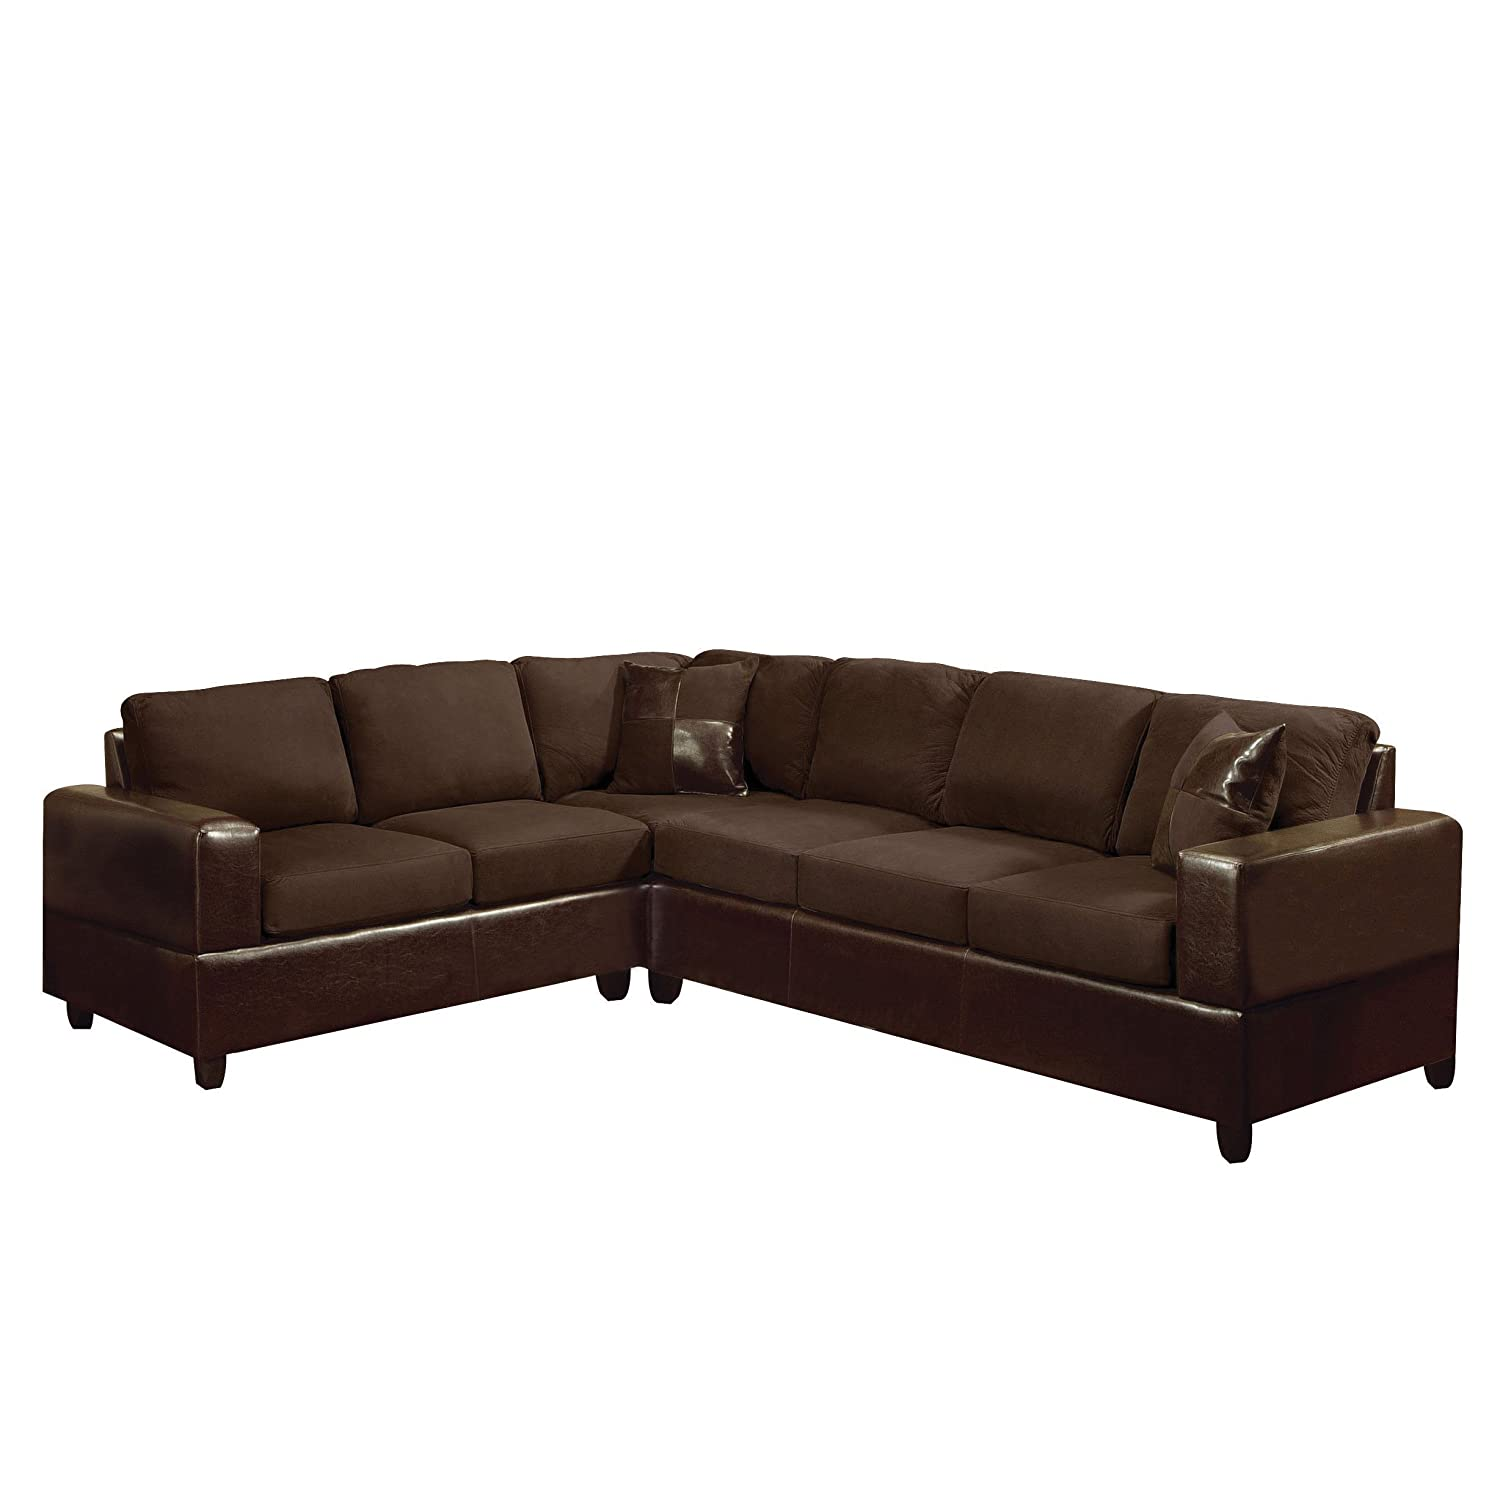 Where Buy Sectional Sofa